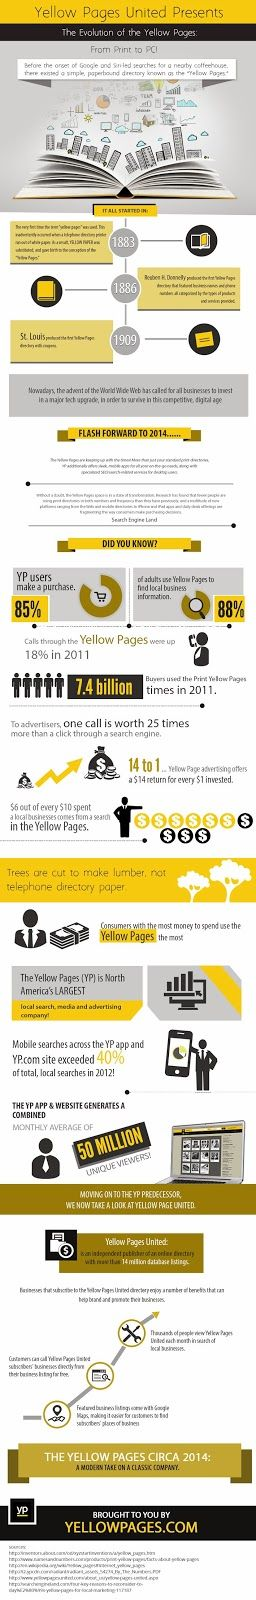 Yellow Pages United Presents: The Evolution of the Yellow Pages.  http://uniteddirectories-yellowpagesunited.blogspot.com/2014/03/yellow-pages-united-presents-evolution.html